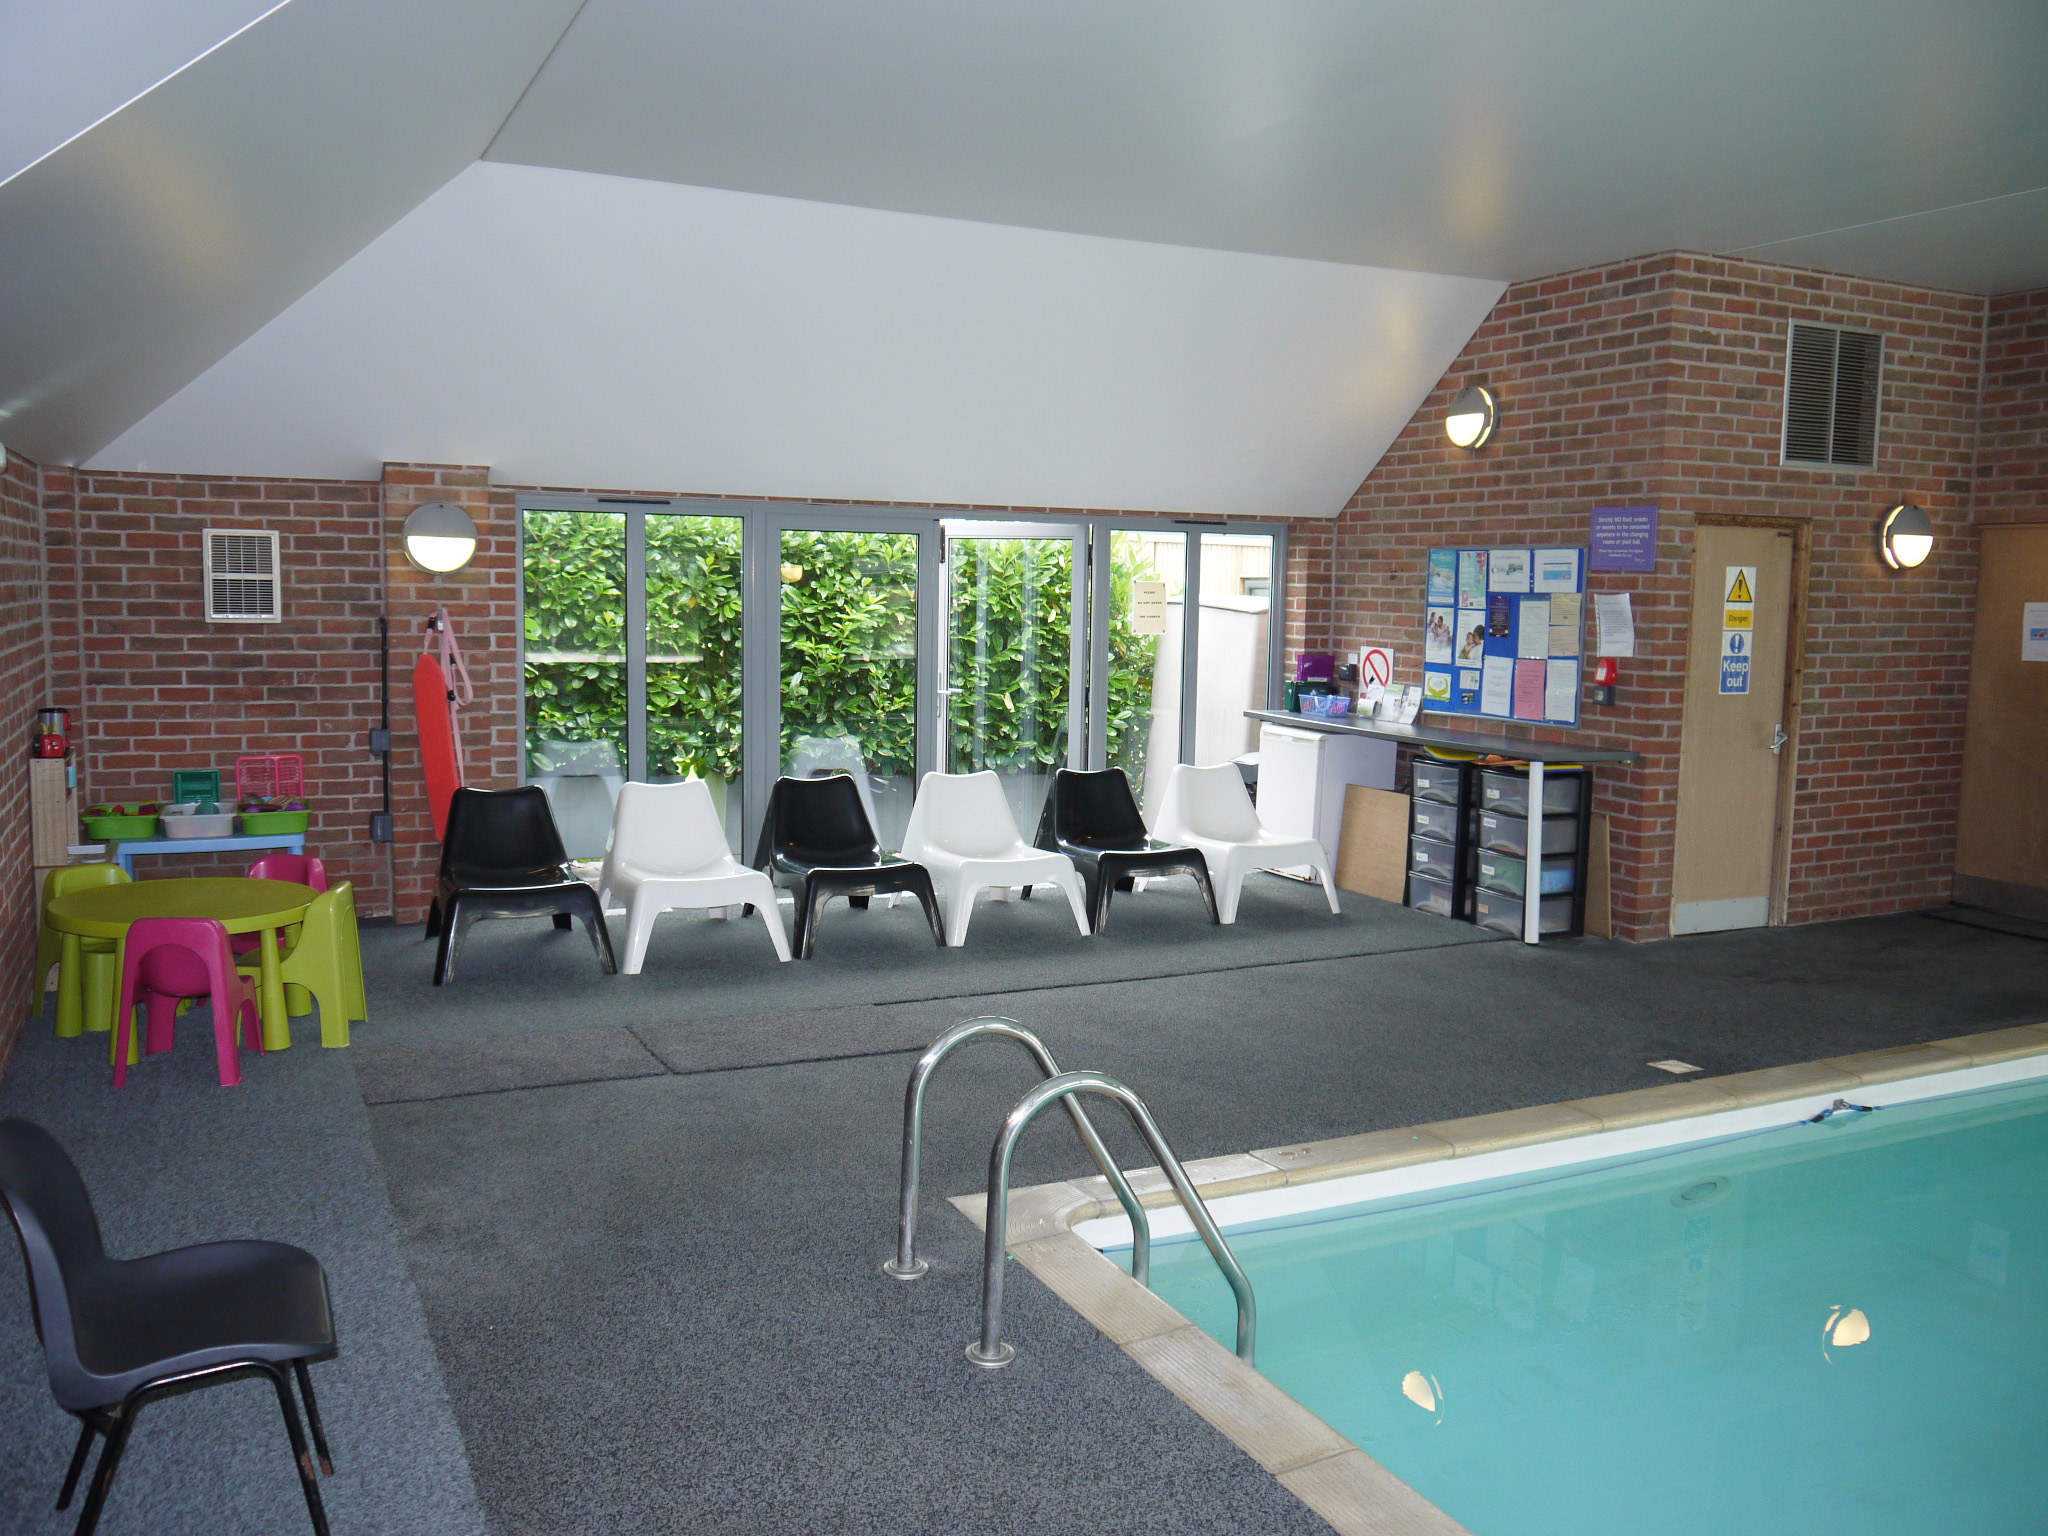 Swimming Pool, Viewing Are